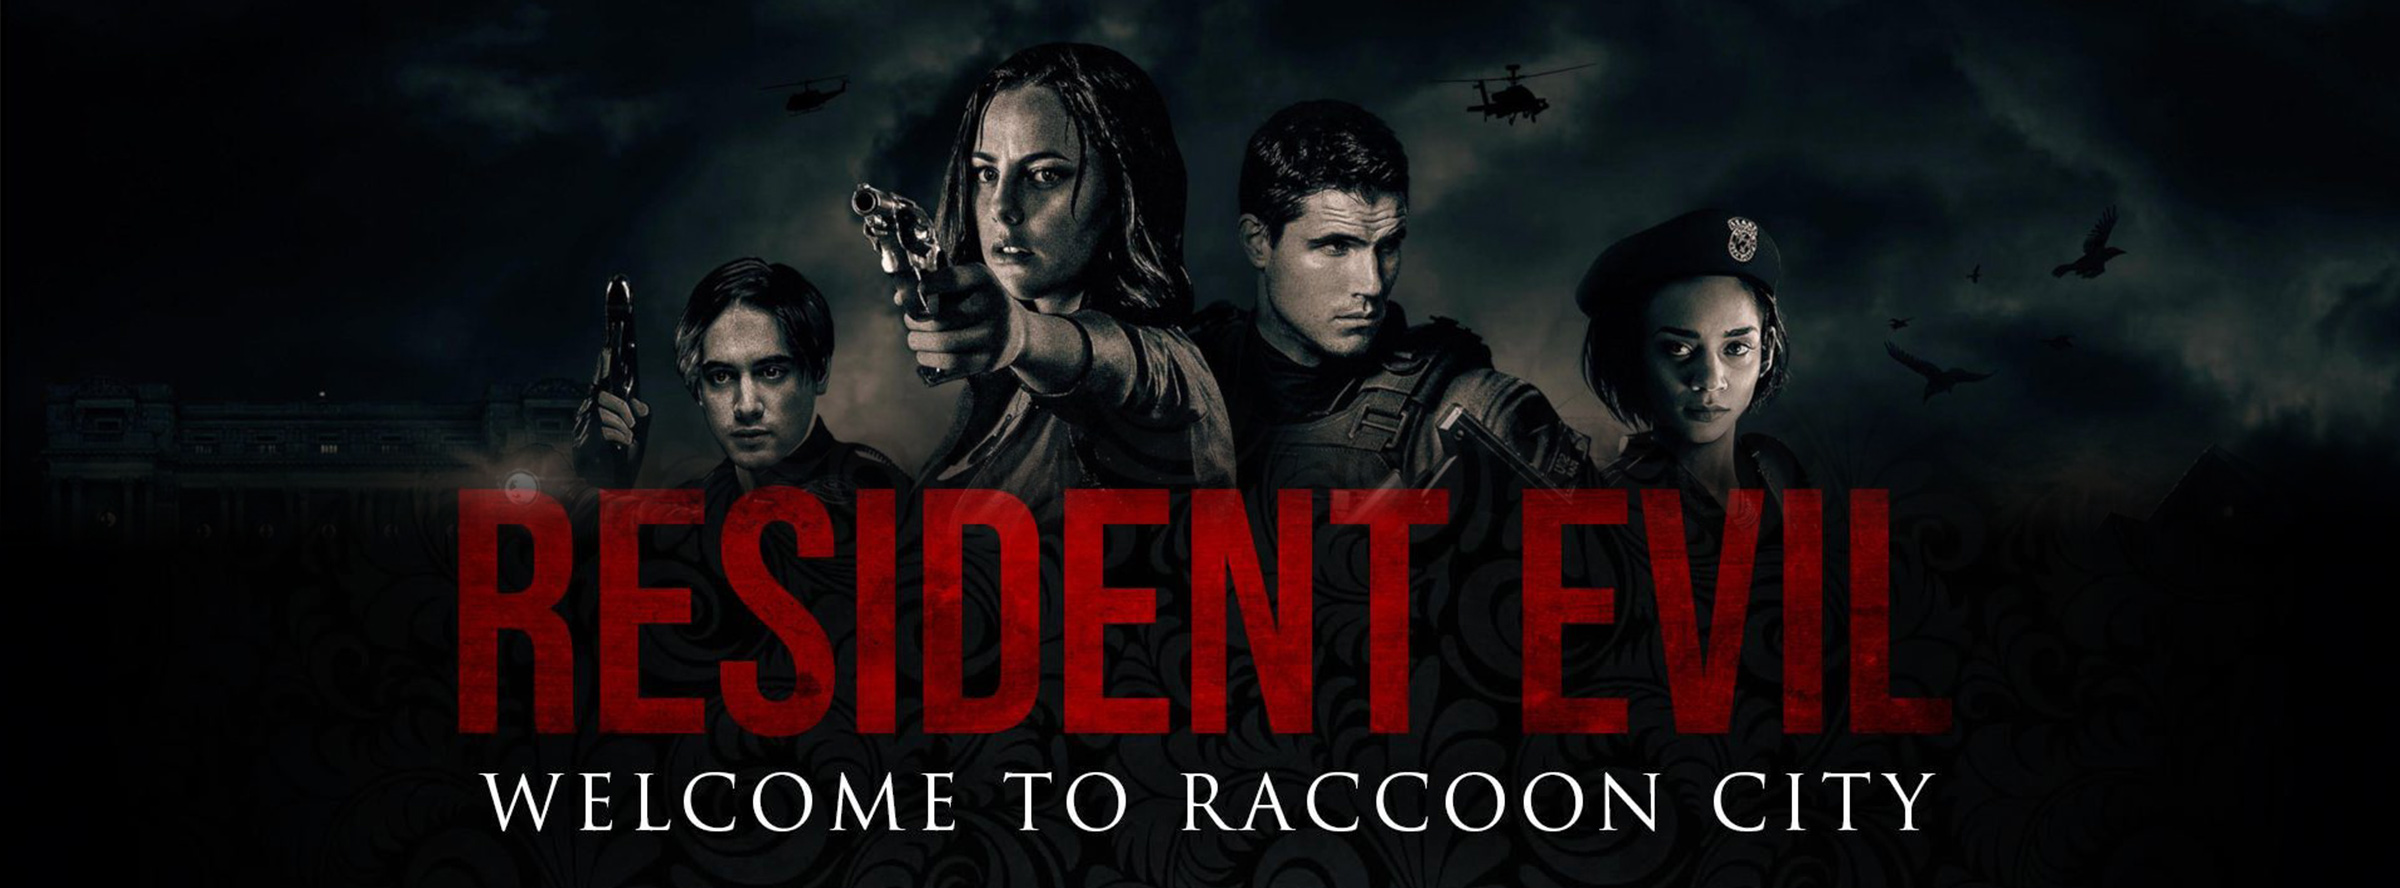 Slider Image for Resident Evil: Welcome to Raccoon City